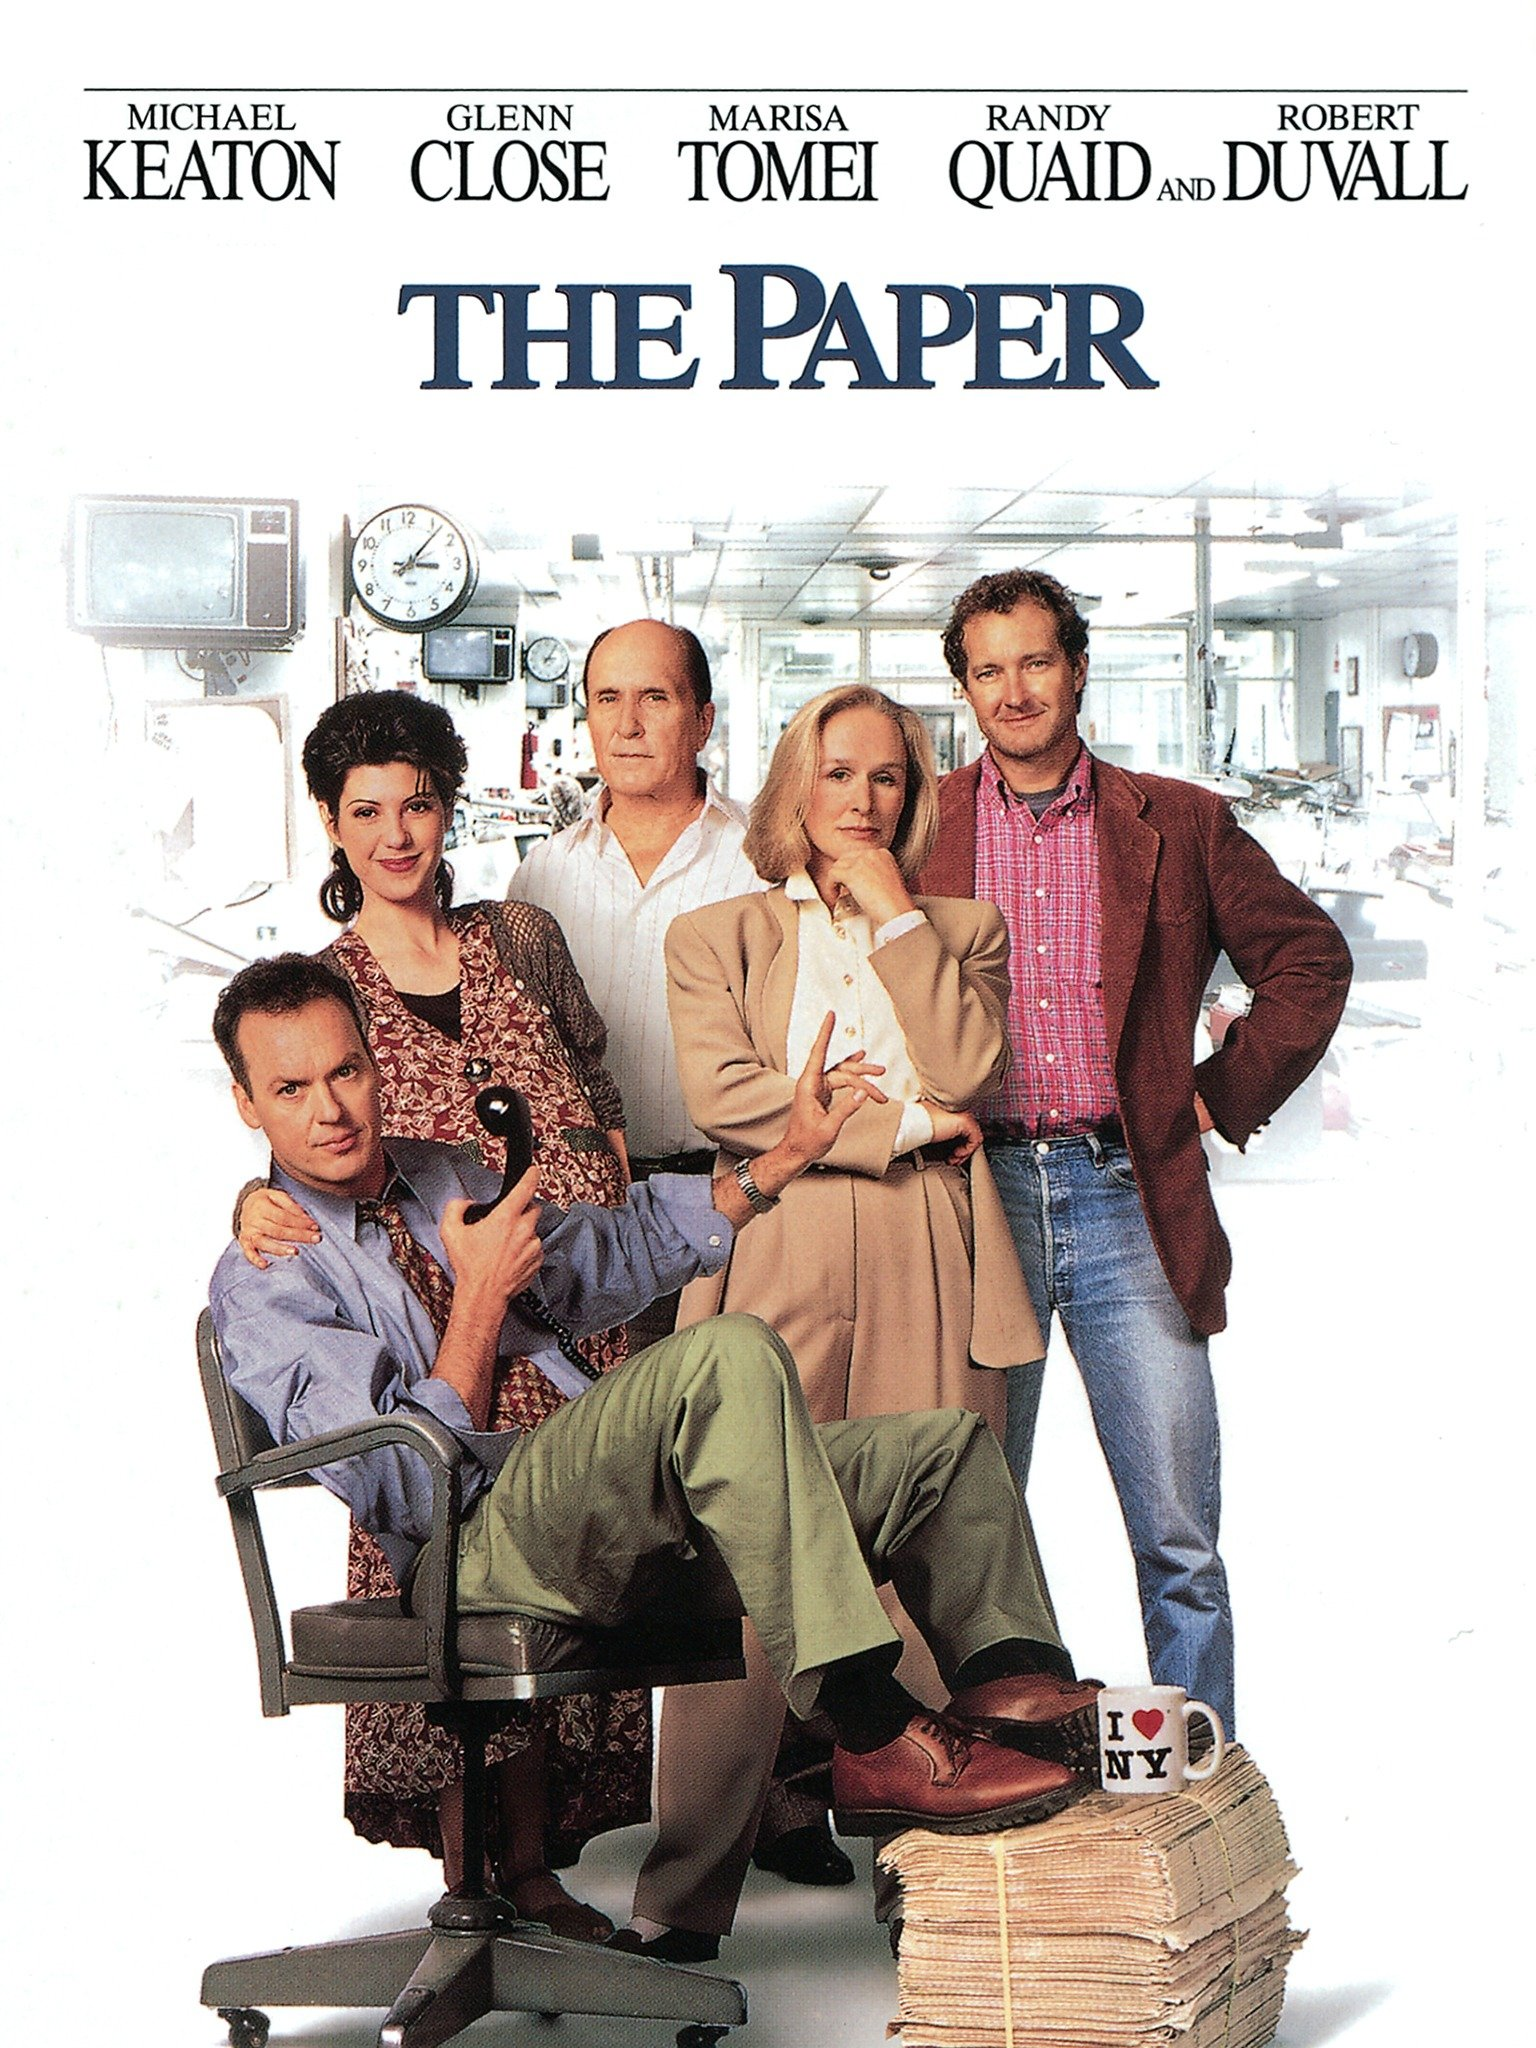 The Paper (1994) - Rotten Tomatoes